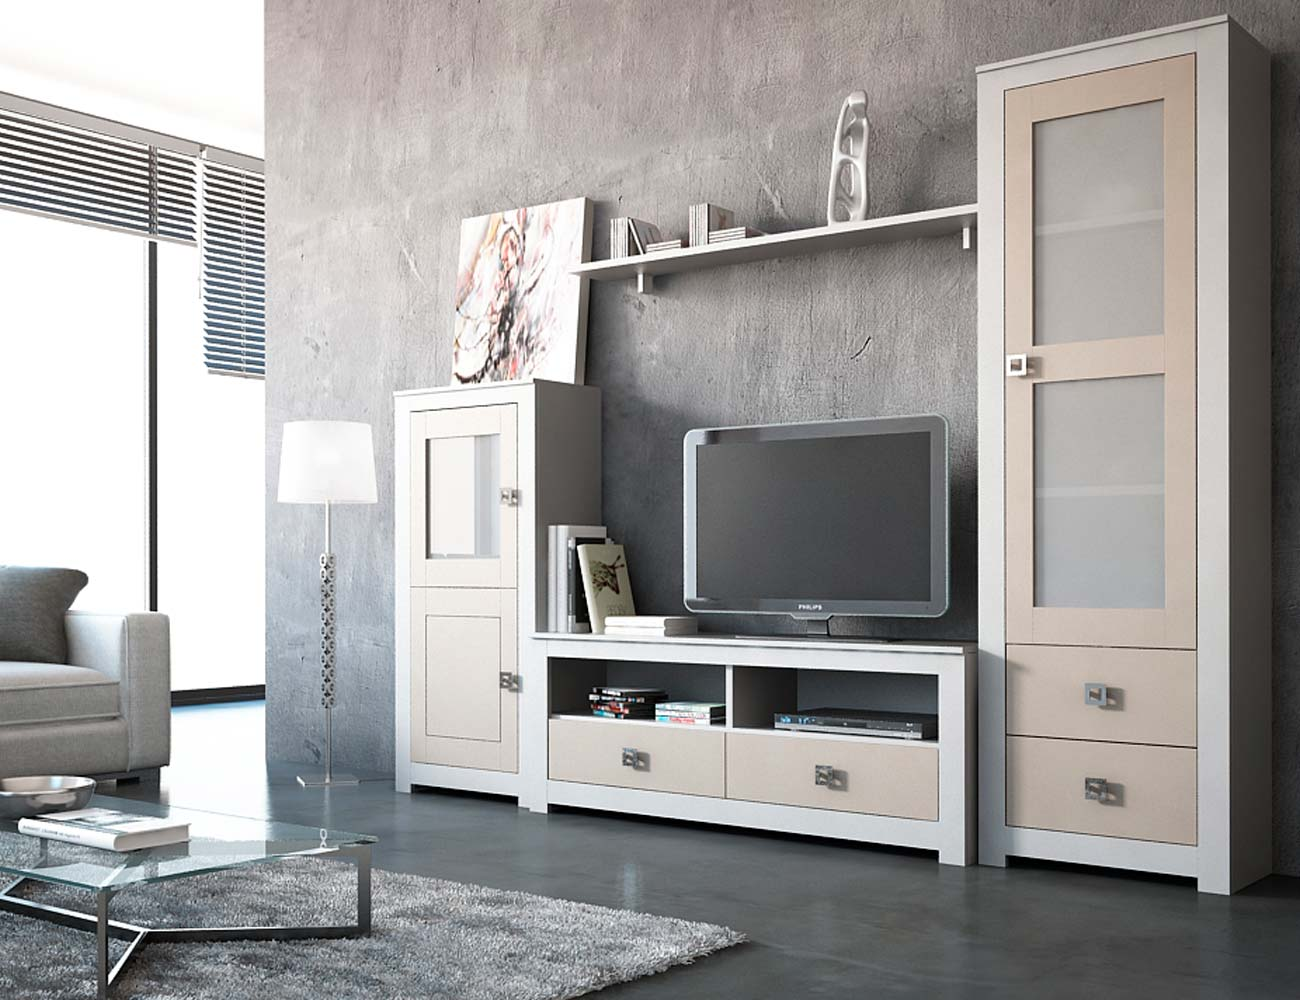 Mueble de sal n modular lacado en blanco con piedra en for Pared de piedra salon